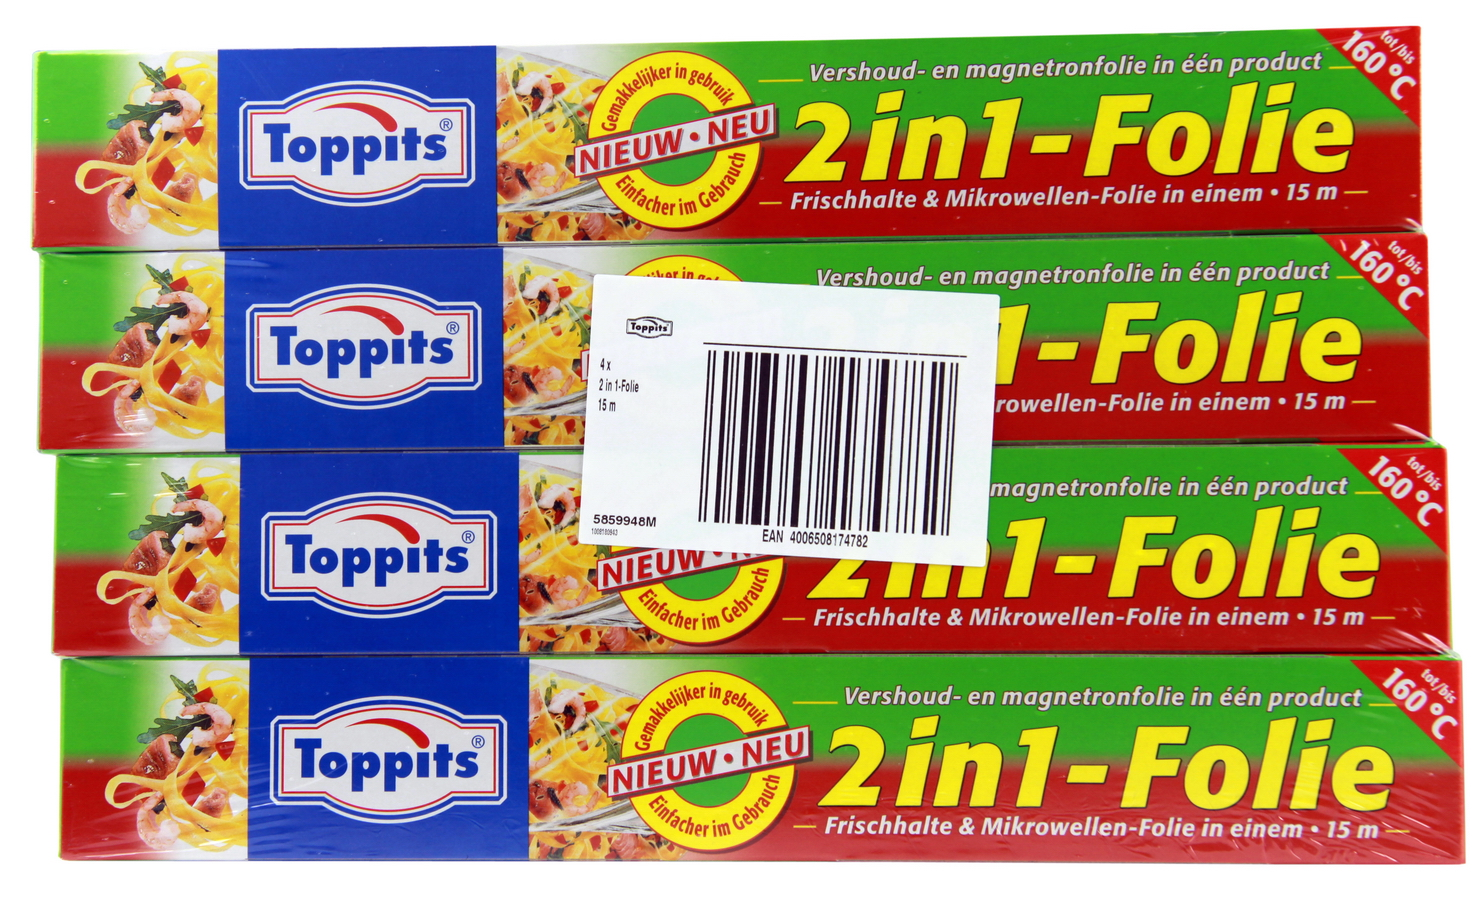 Toppits 2in1 Folie